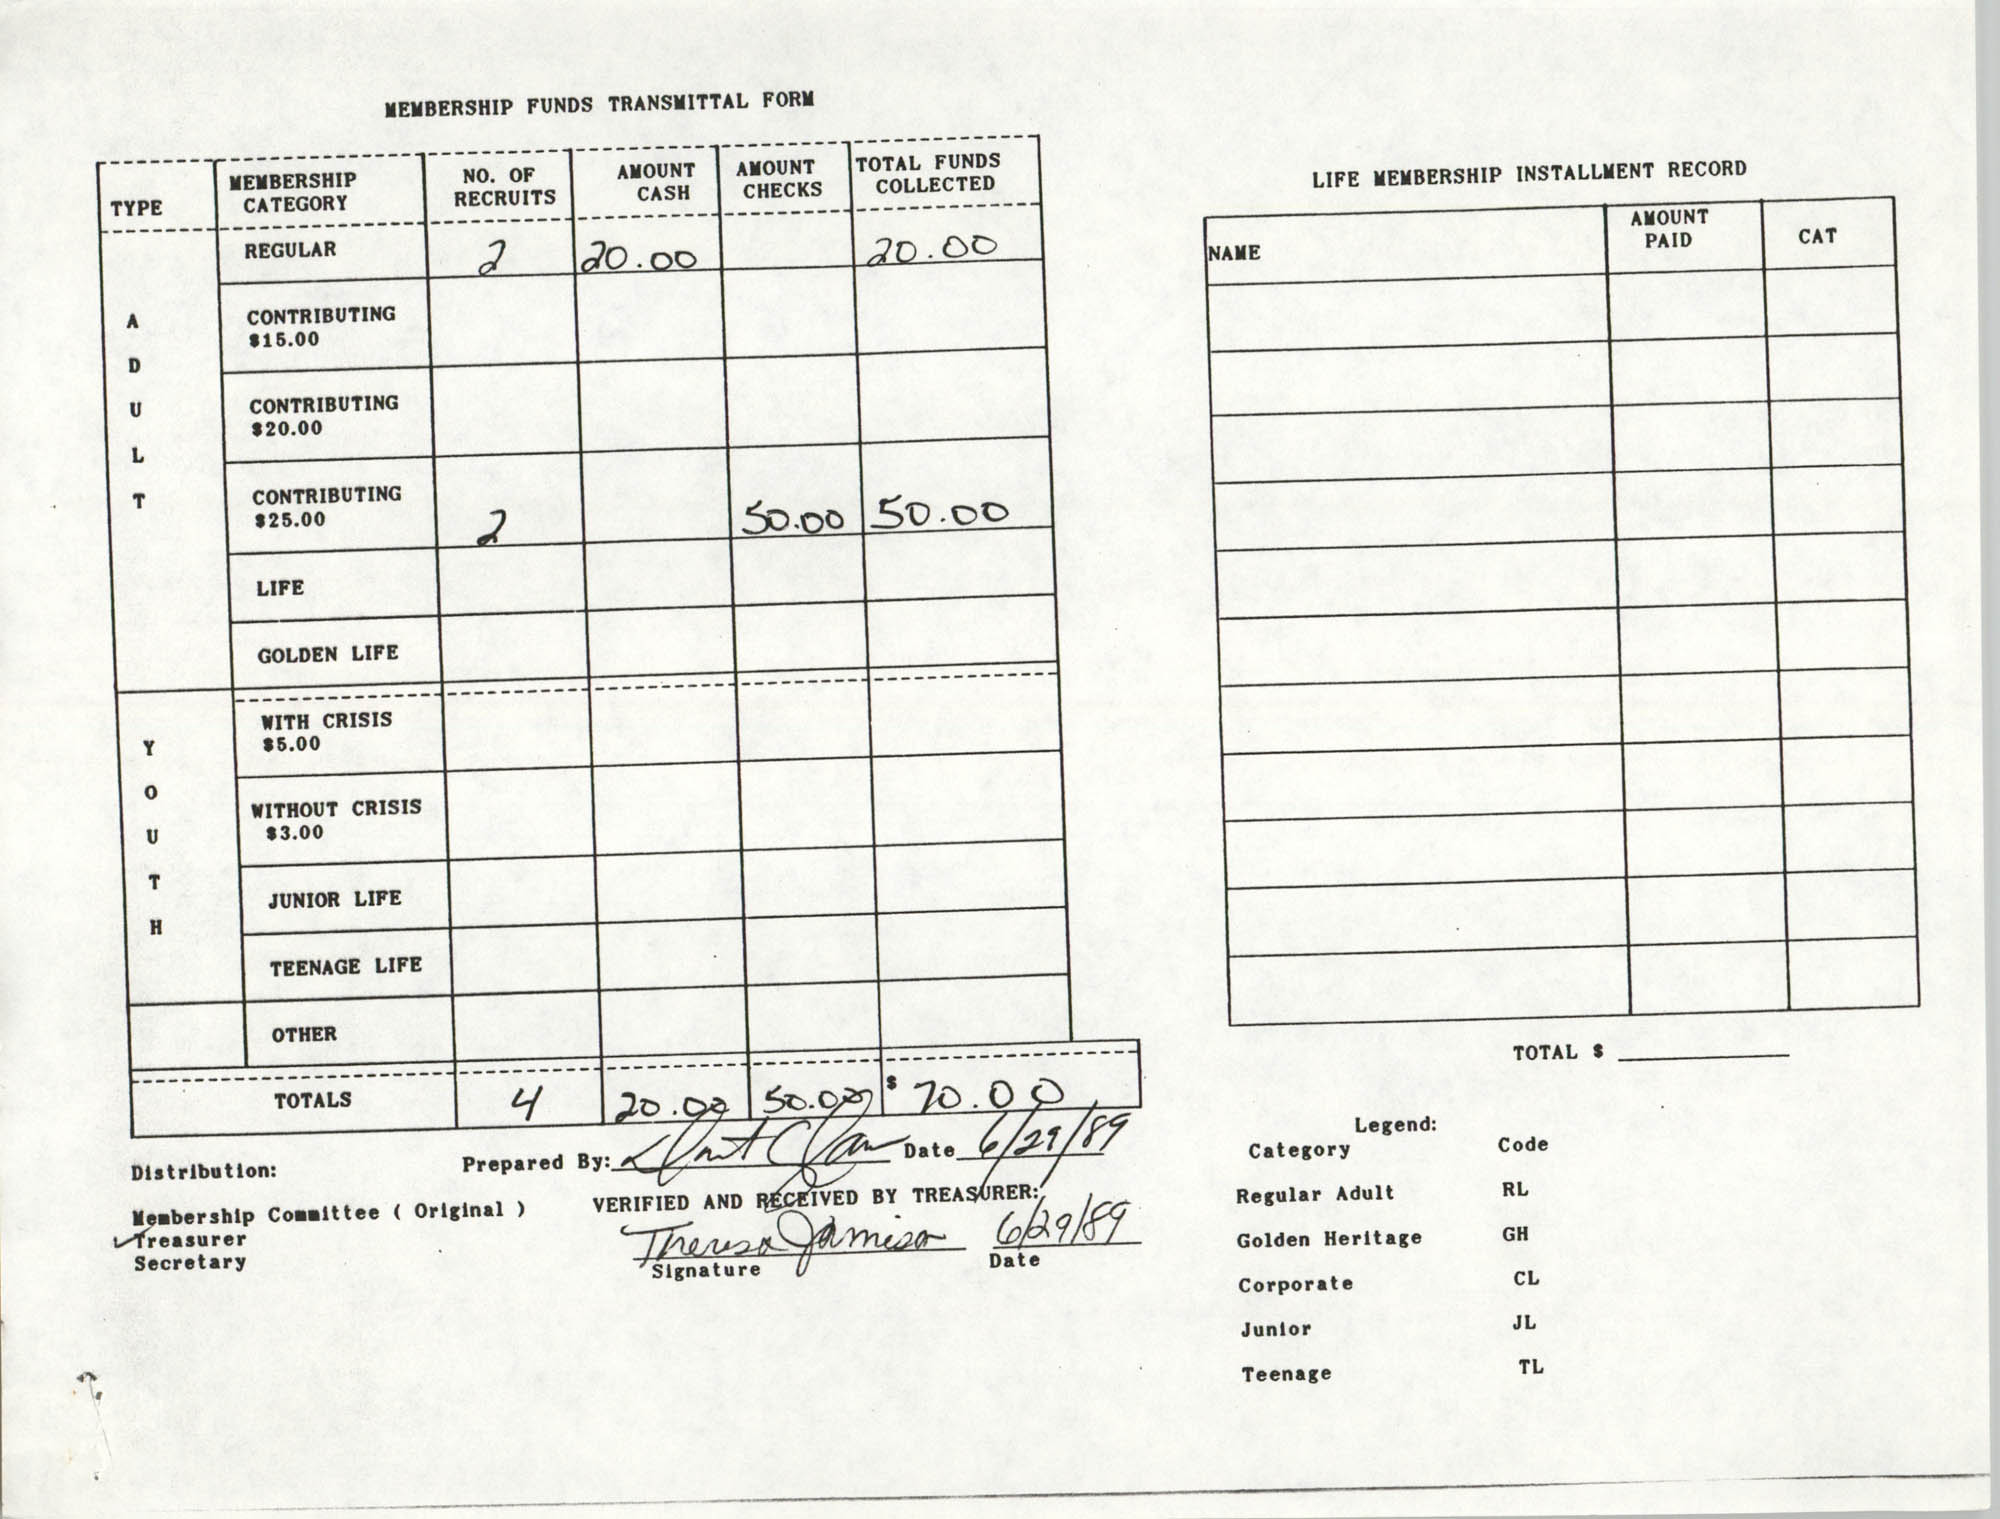 Charleston Branch of the NAACP Funds Transmittal Forms, June 1989, Page 5